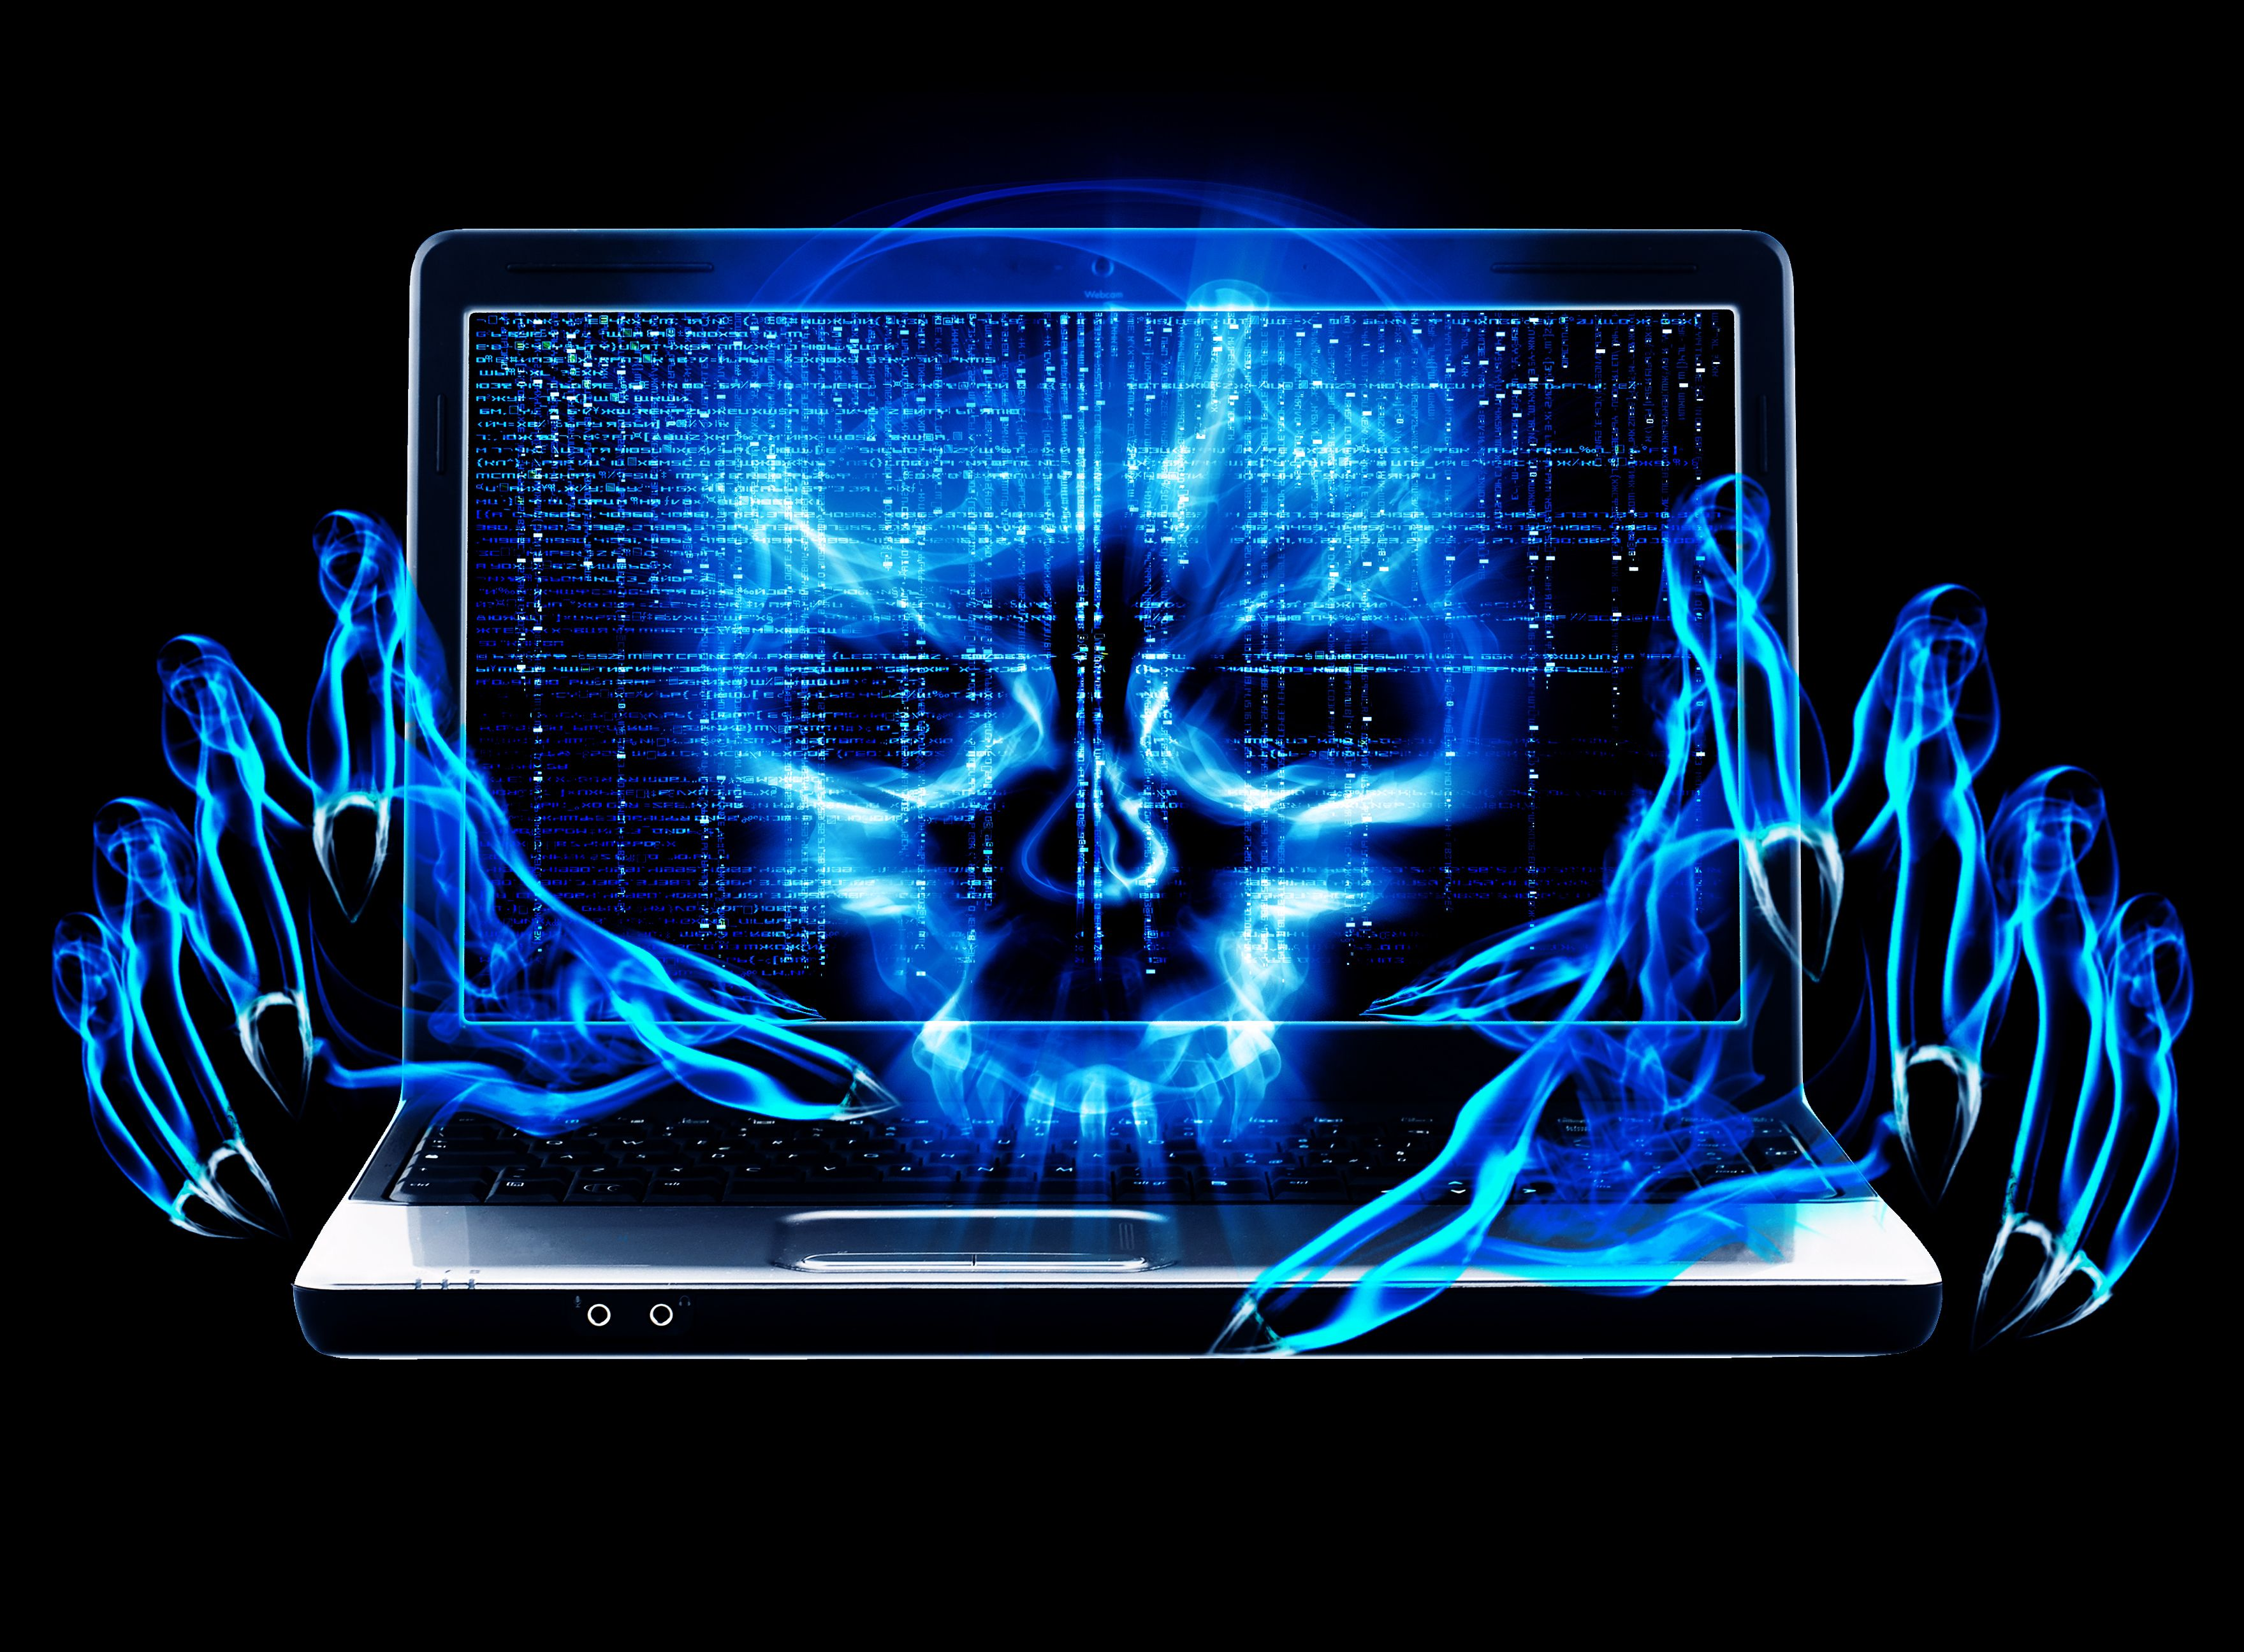 Plugged In Online >> The 10 Most Dangerous Computer Viruses Ever | TheRichest